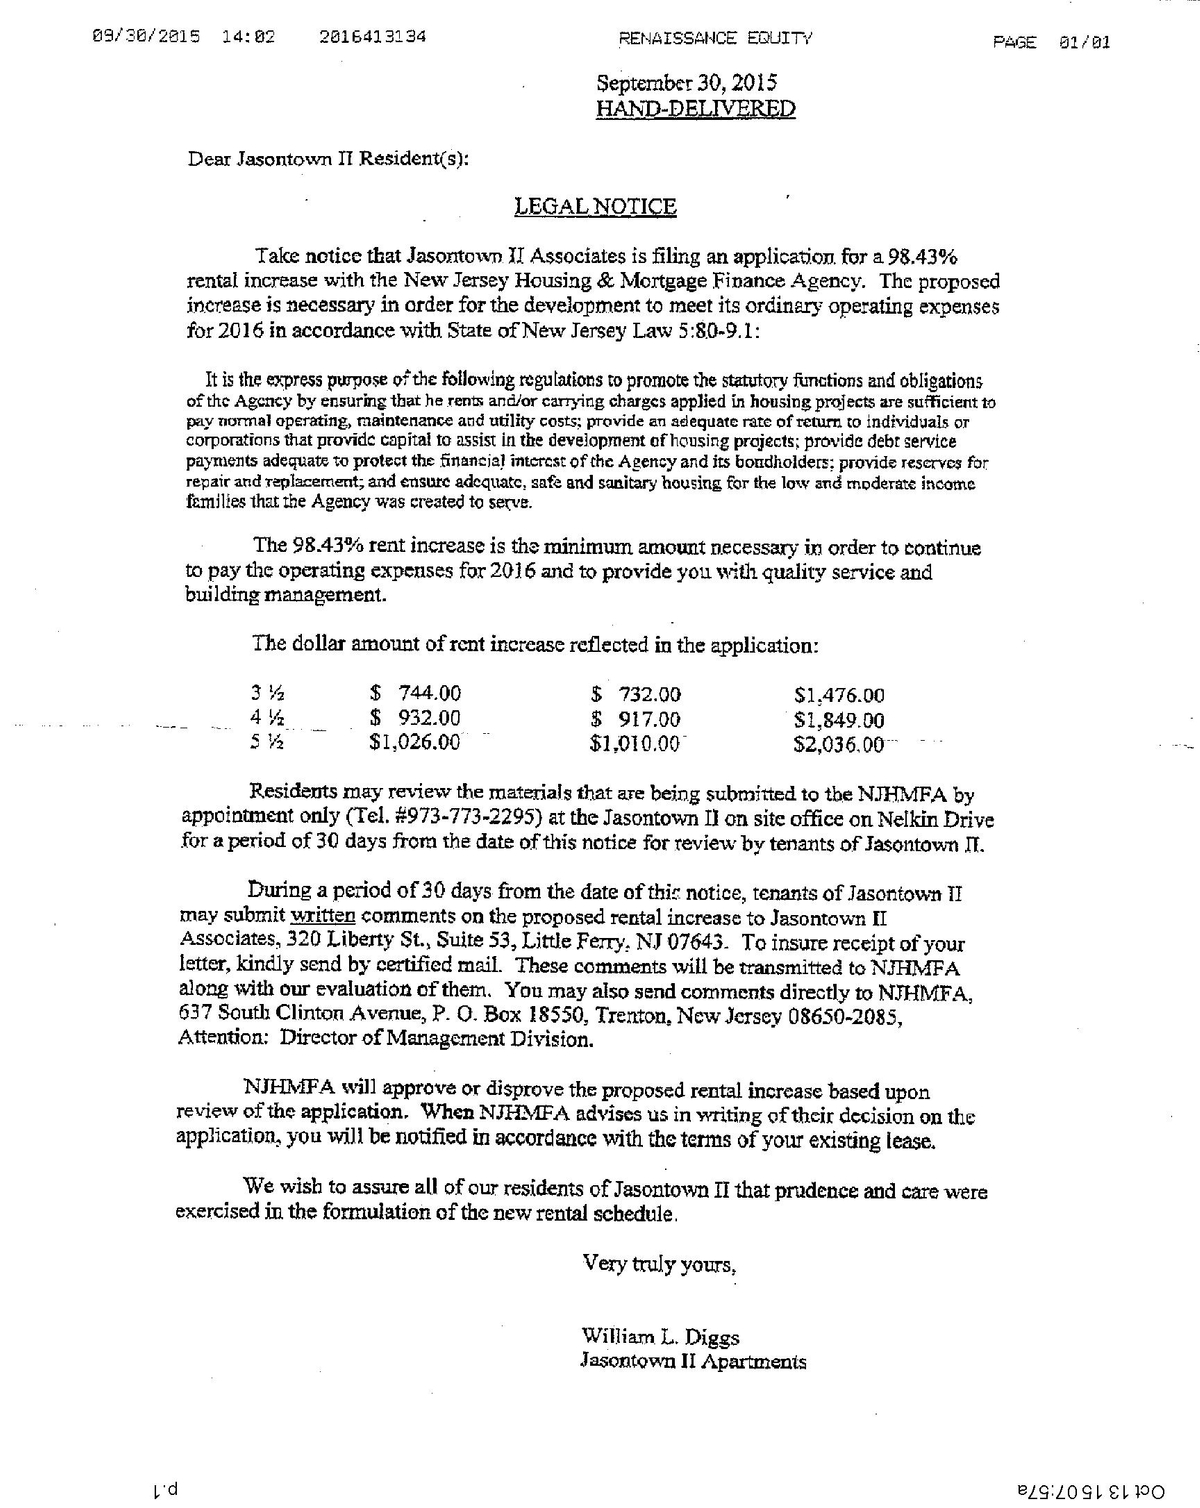 the_letter_residence_got_in_Wallington.JPG